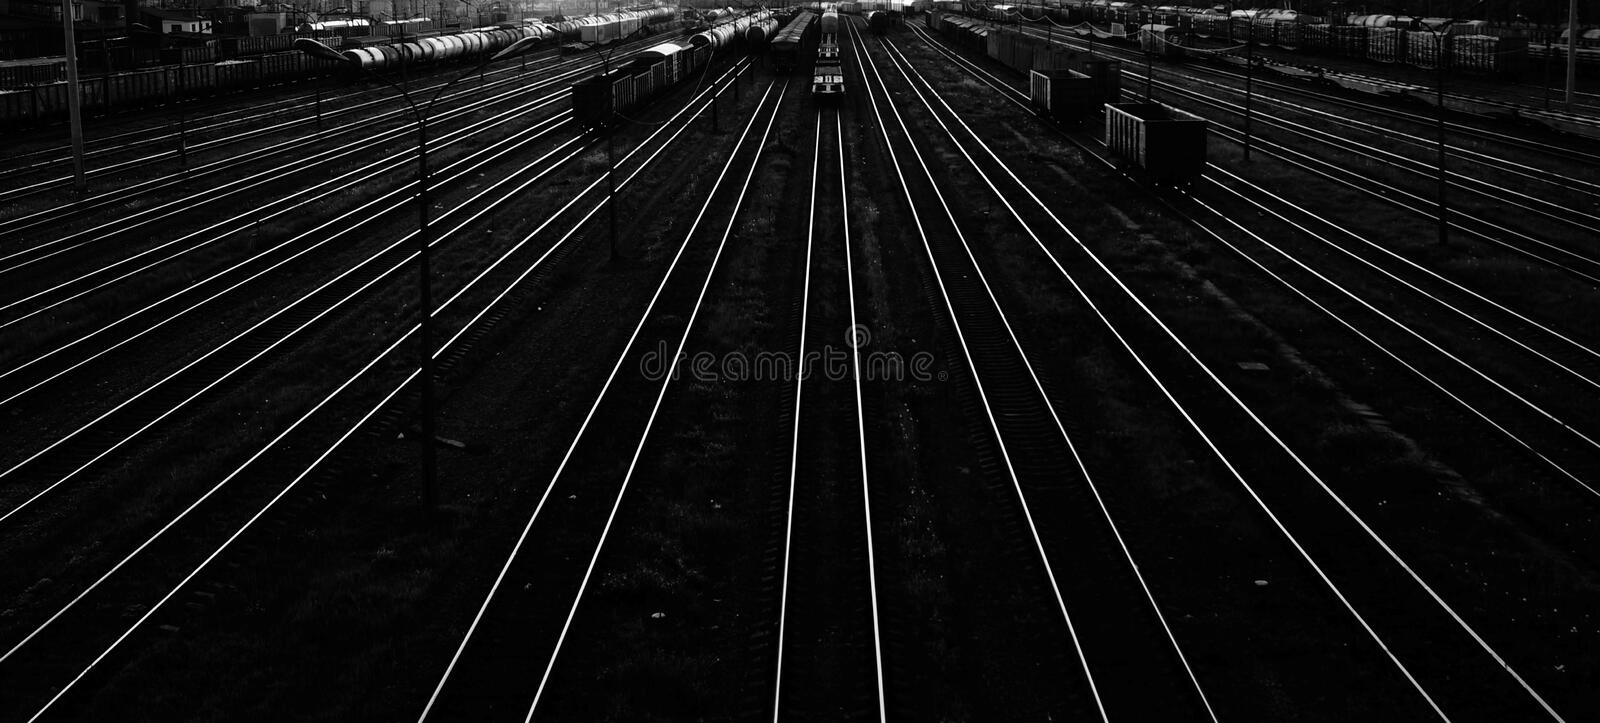 Trains in the railway station black and white background royalty free stock photography